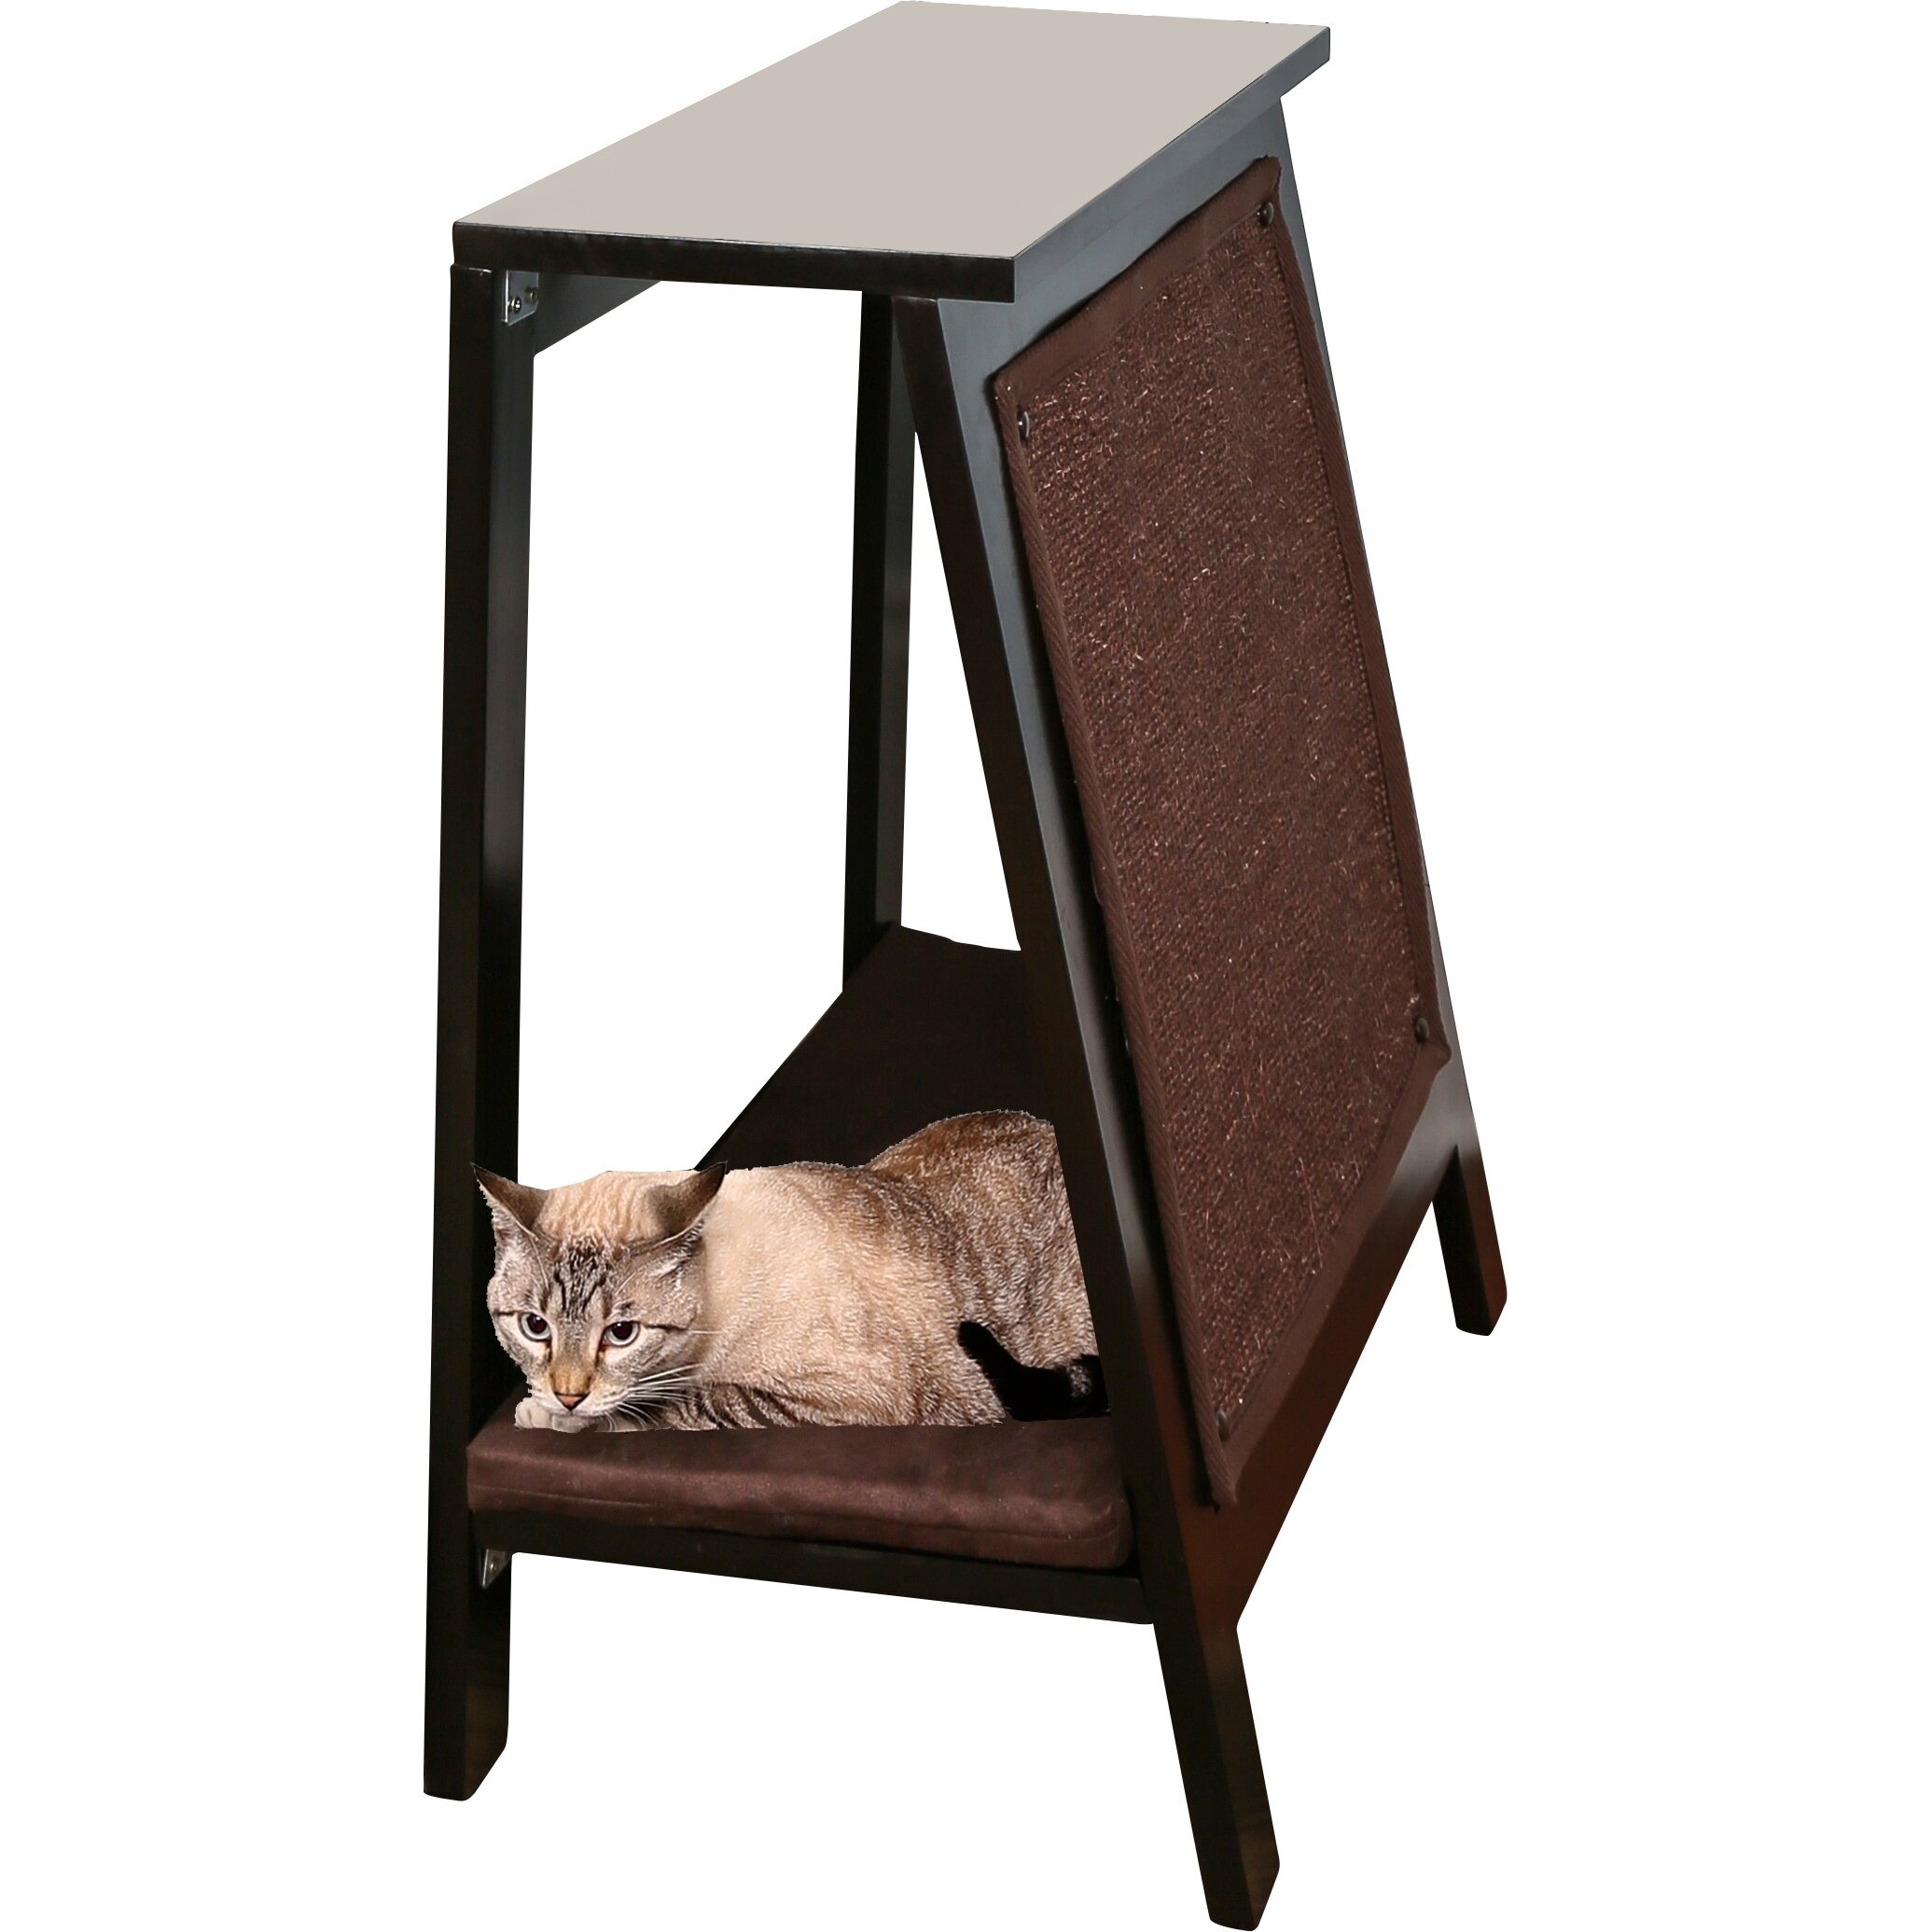 The Refined Feline A-Frame Cat Bed